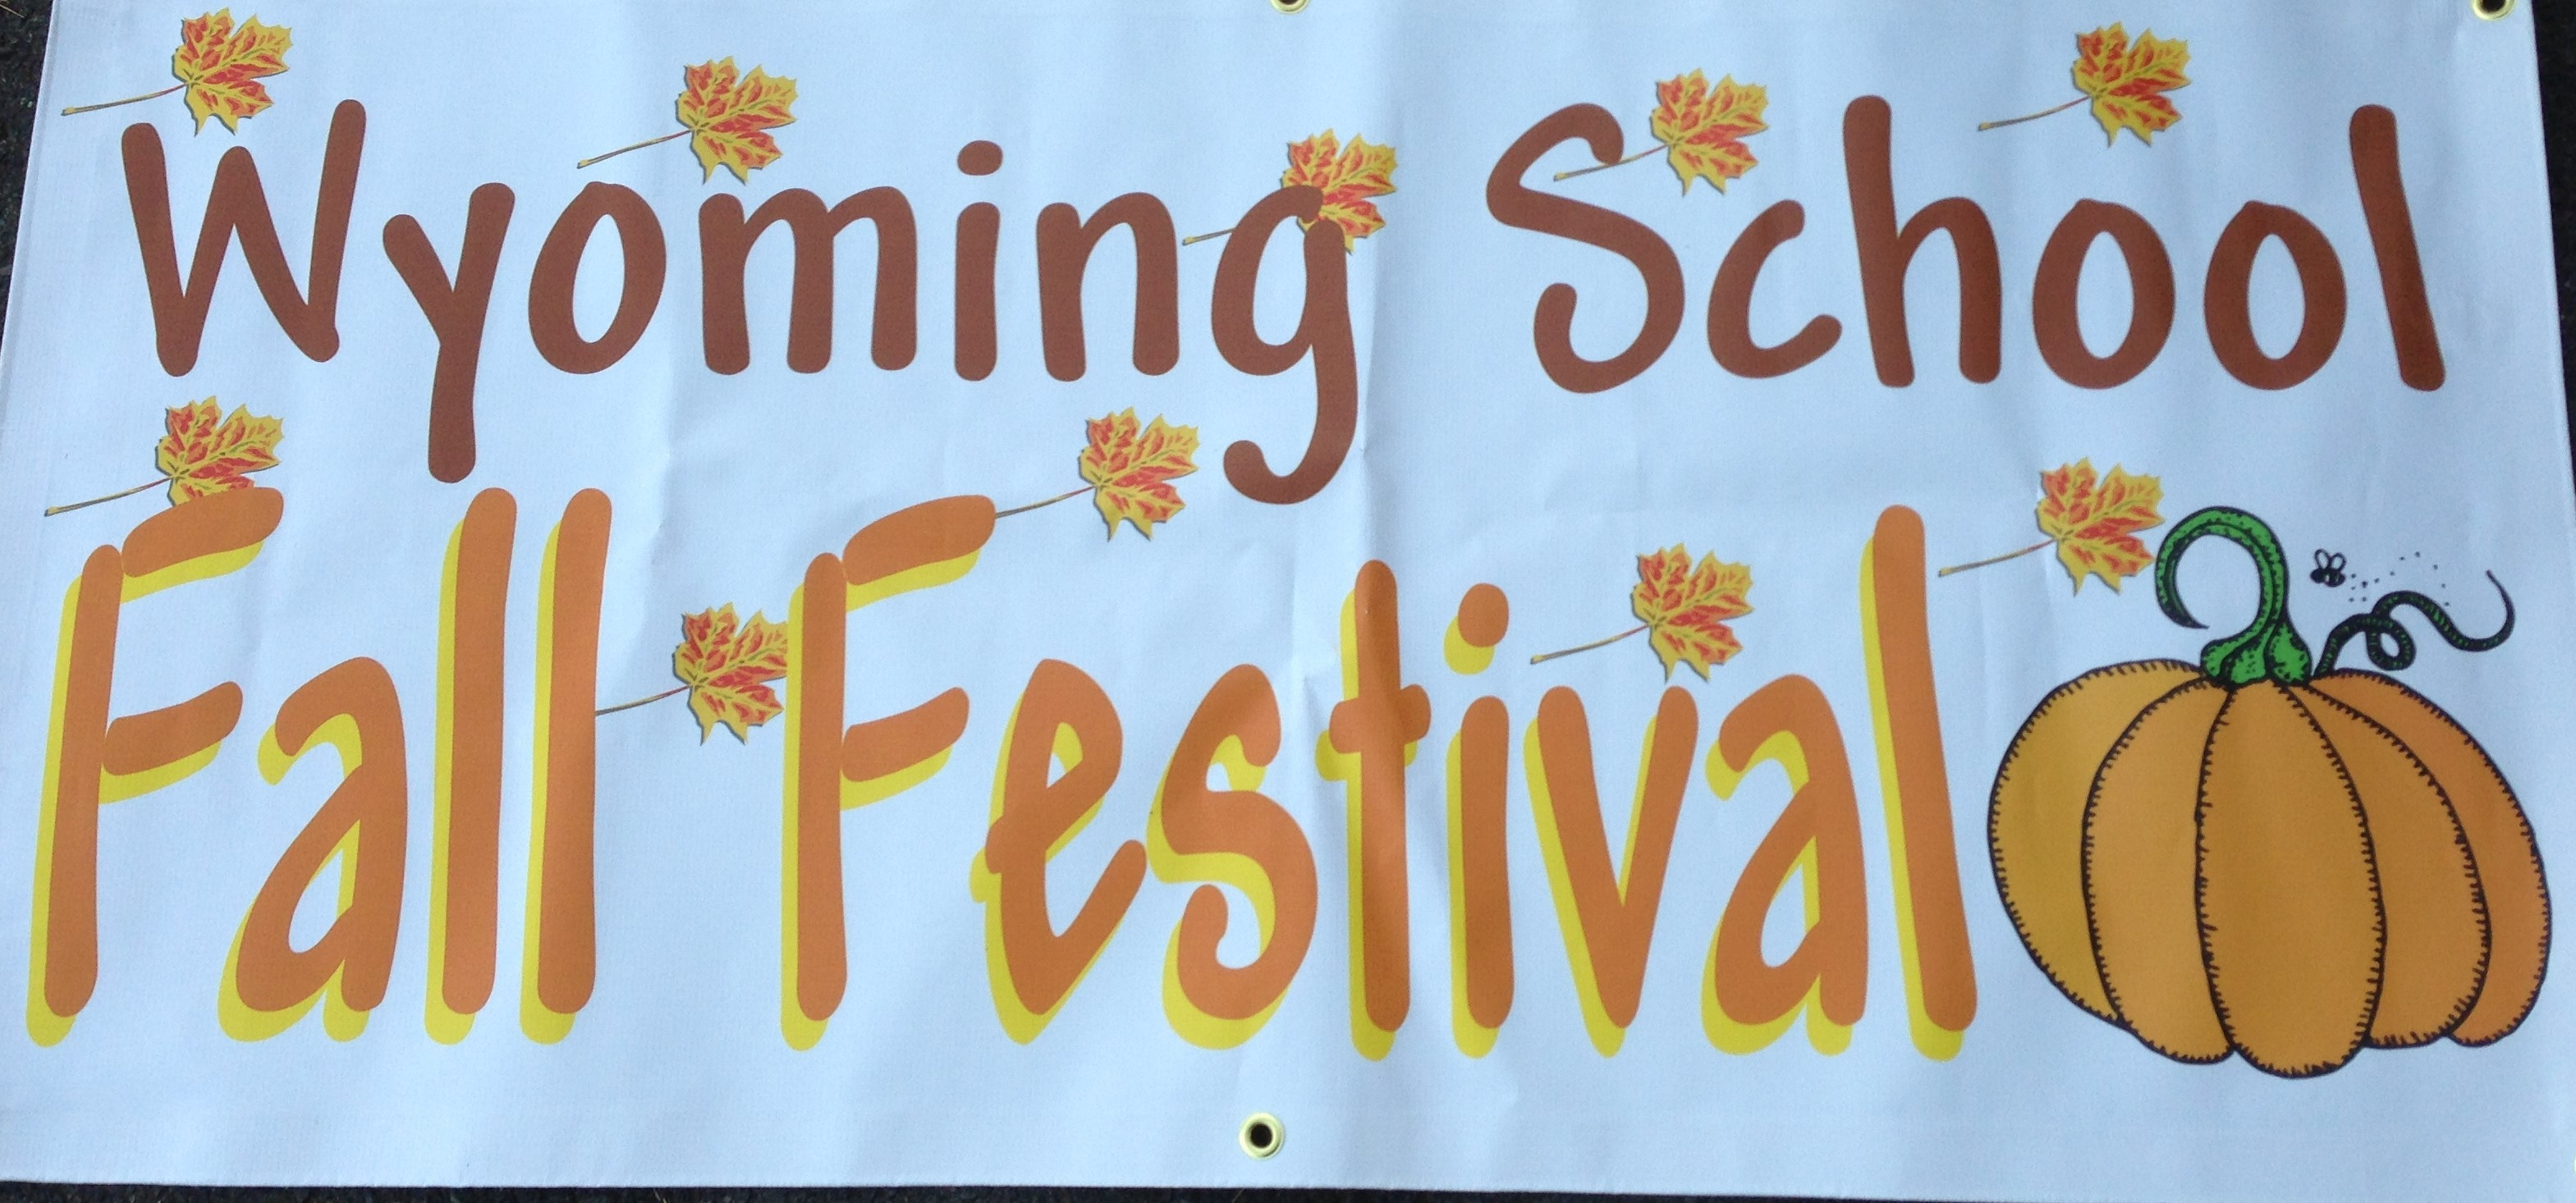 13b7dd020ca970e53680_Wyoming_School_Fall_Festival.JPG